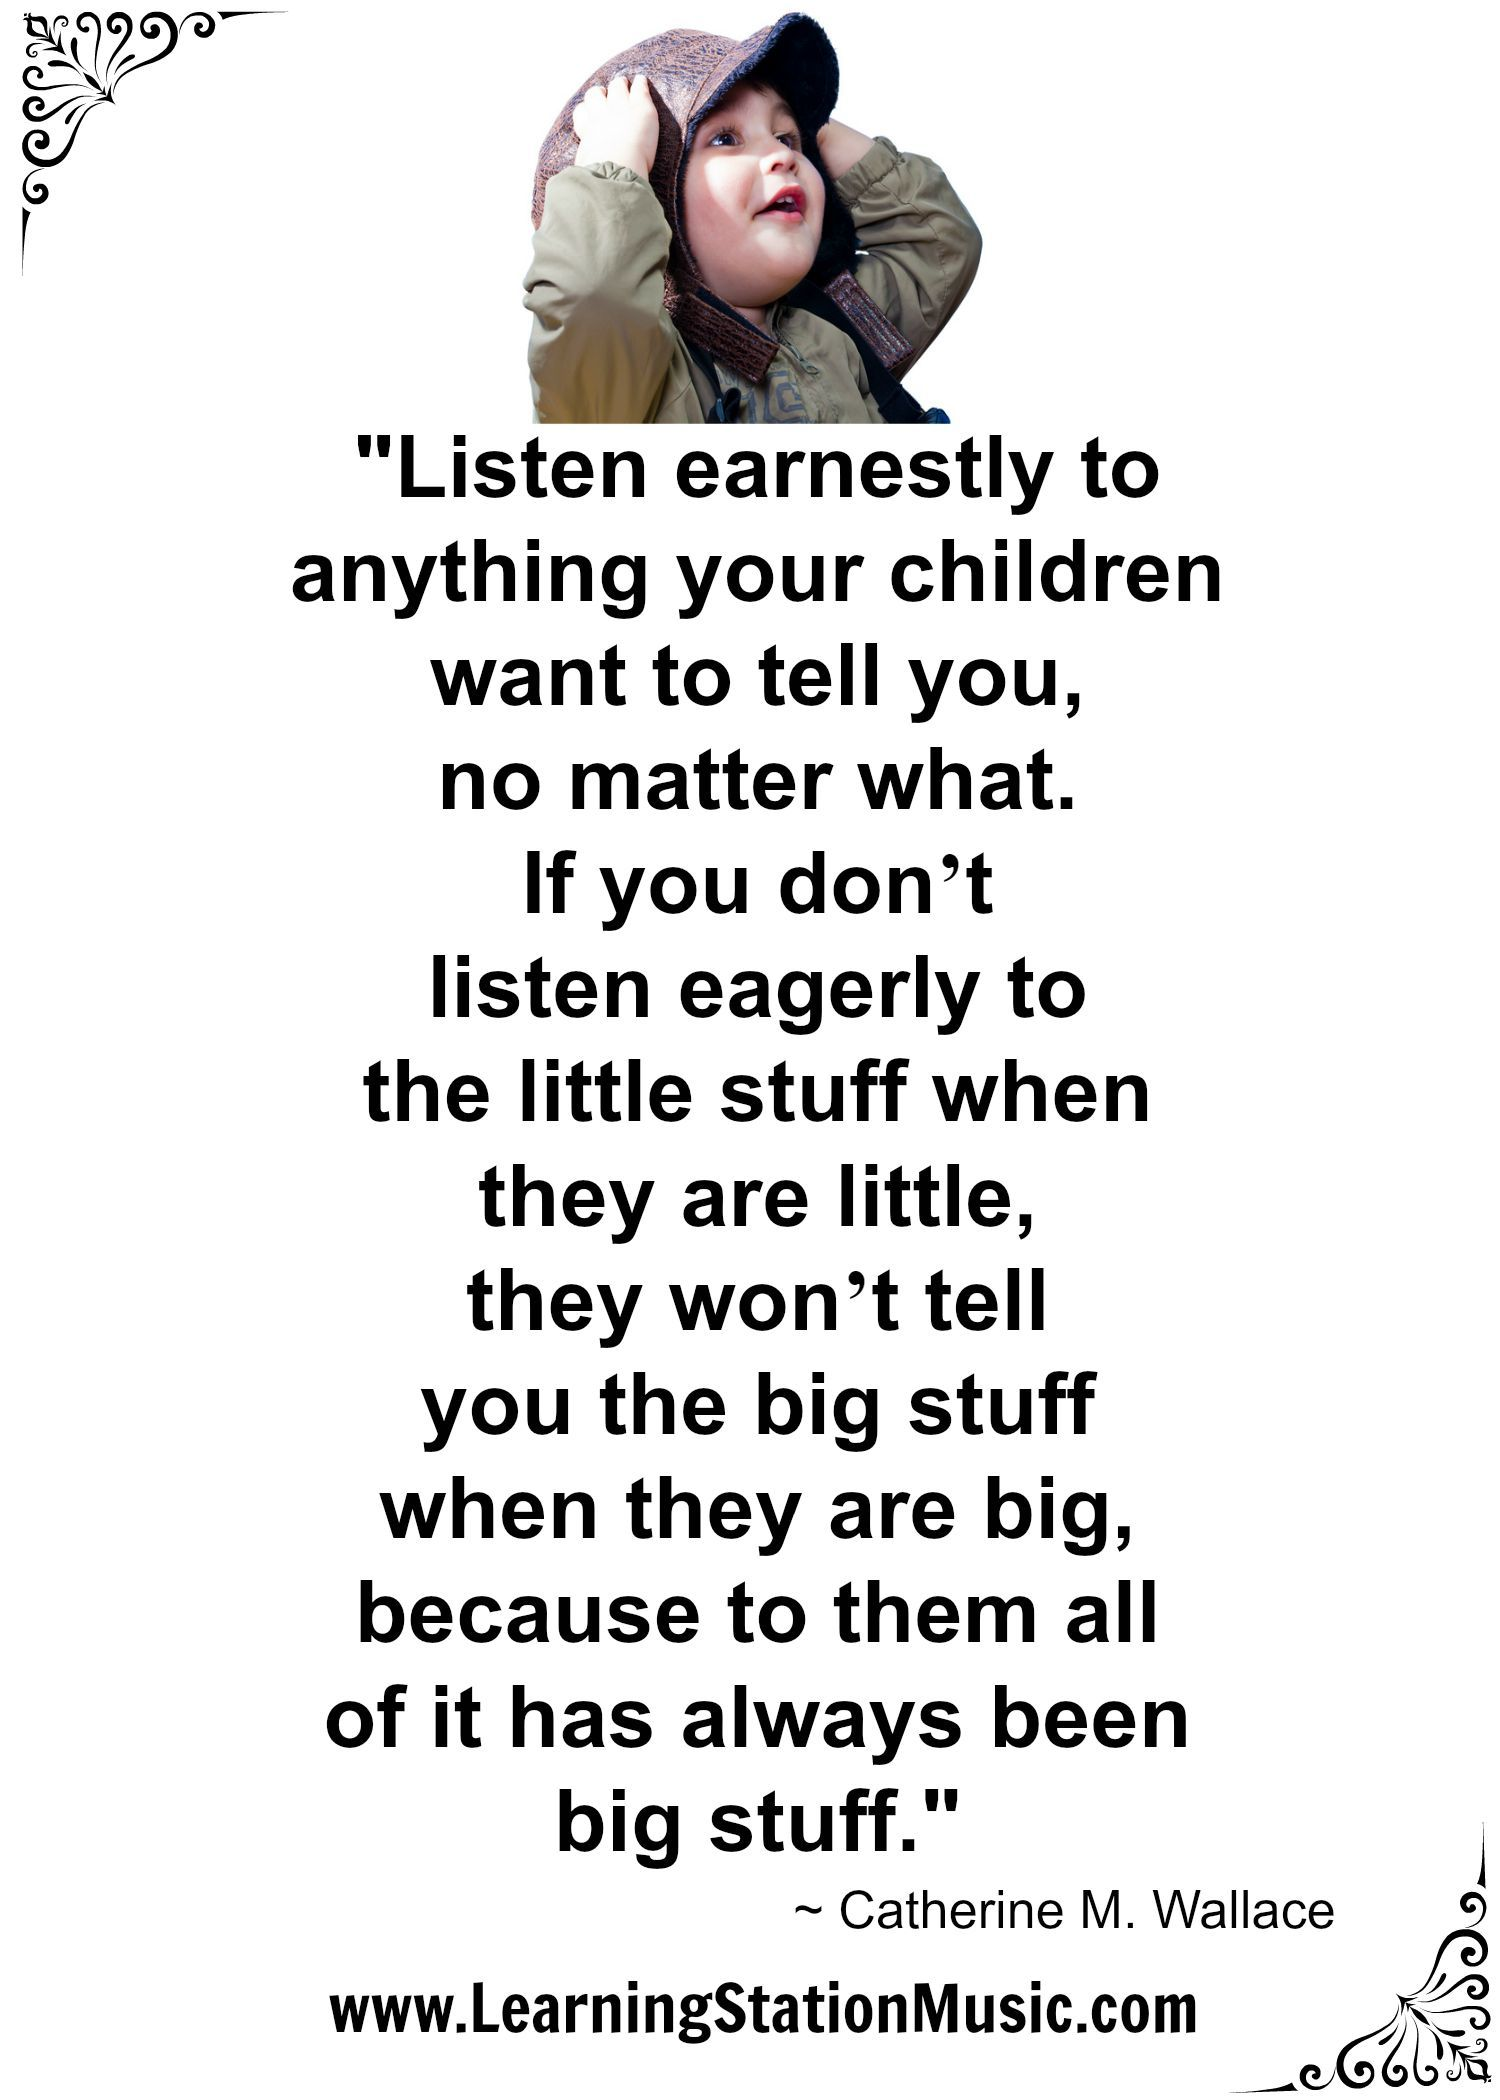 listen earnestly to anything your children want to tell you no